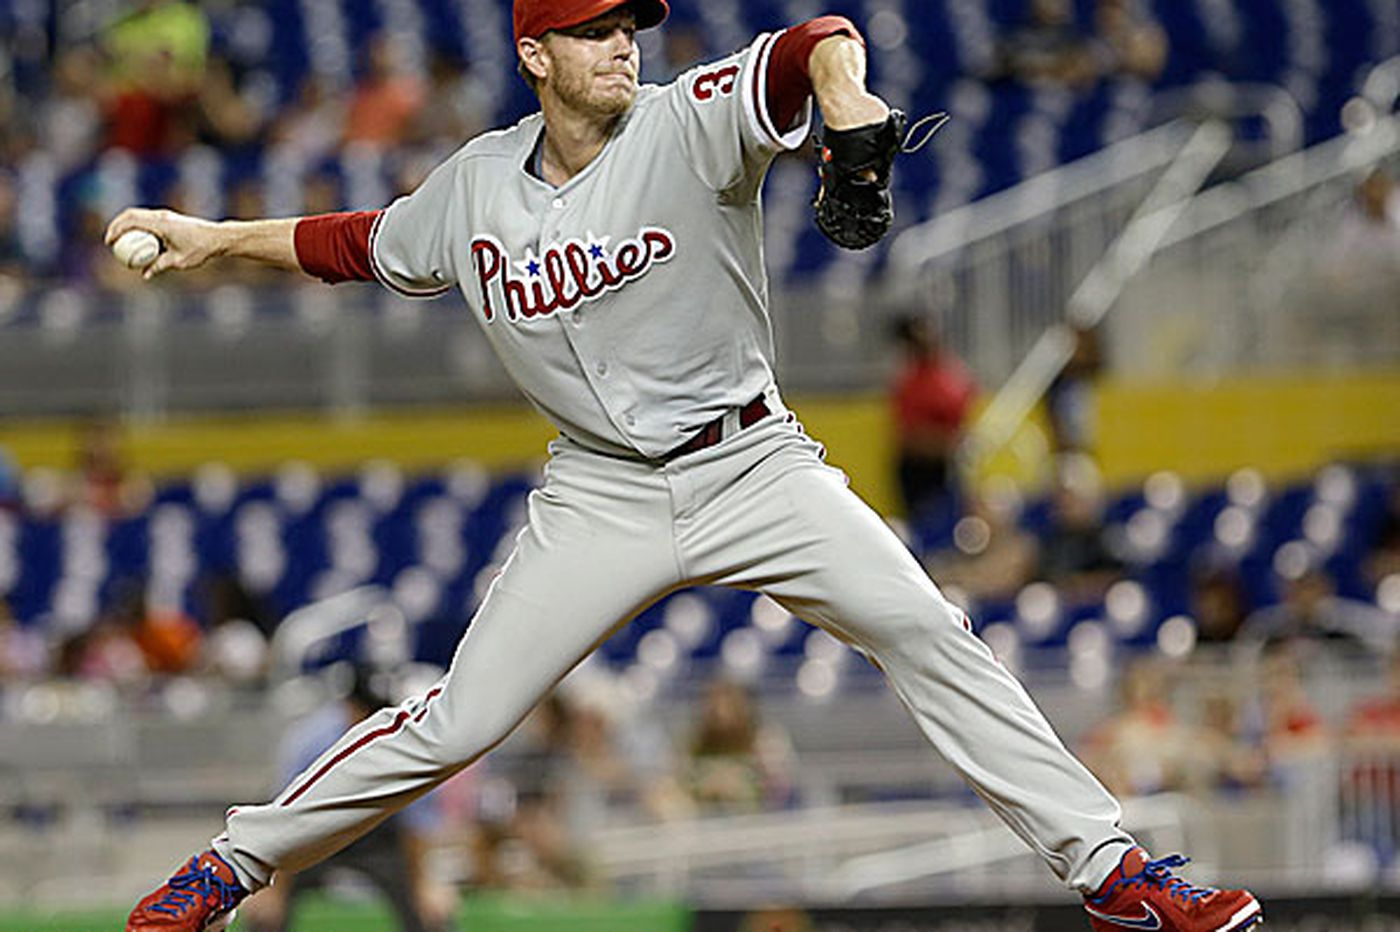 Phillies shouldn't re-sign Roy Halladay